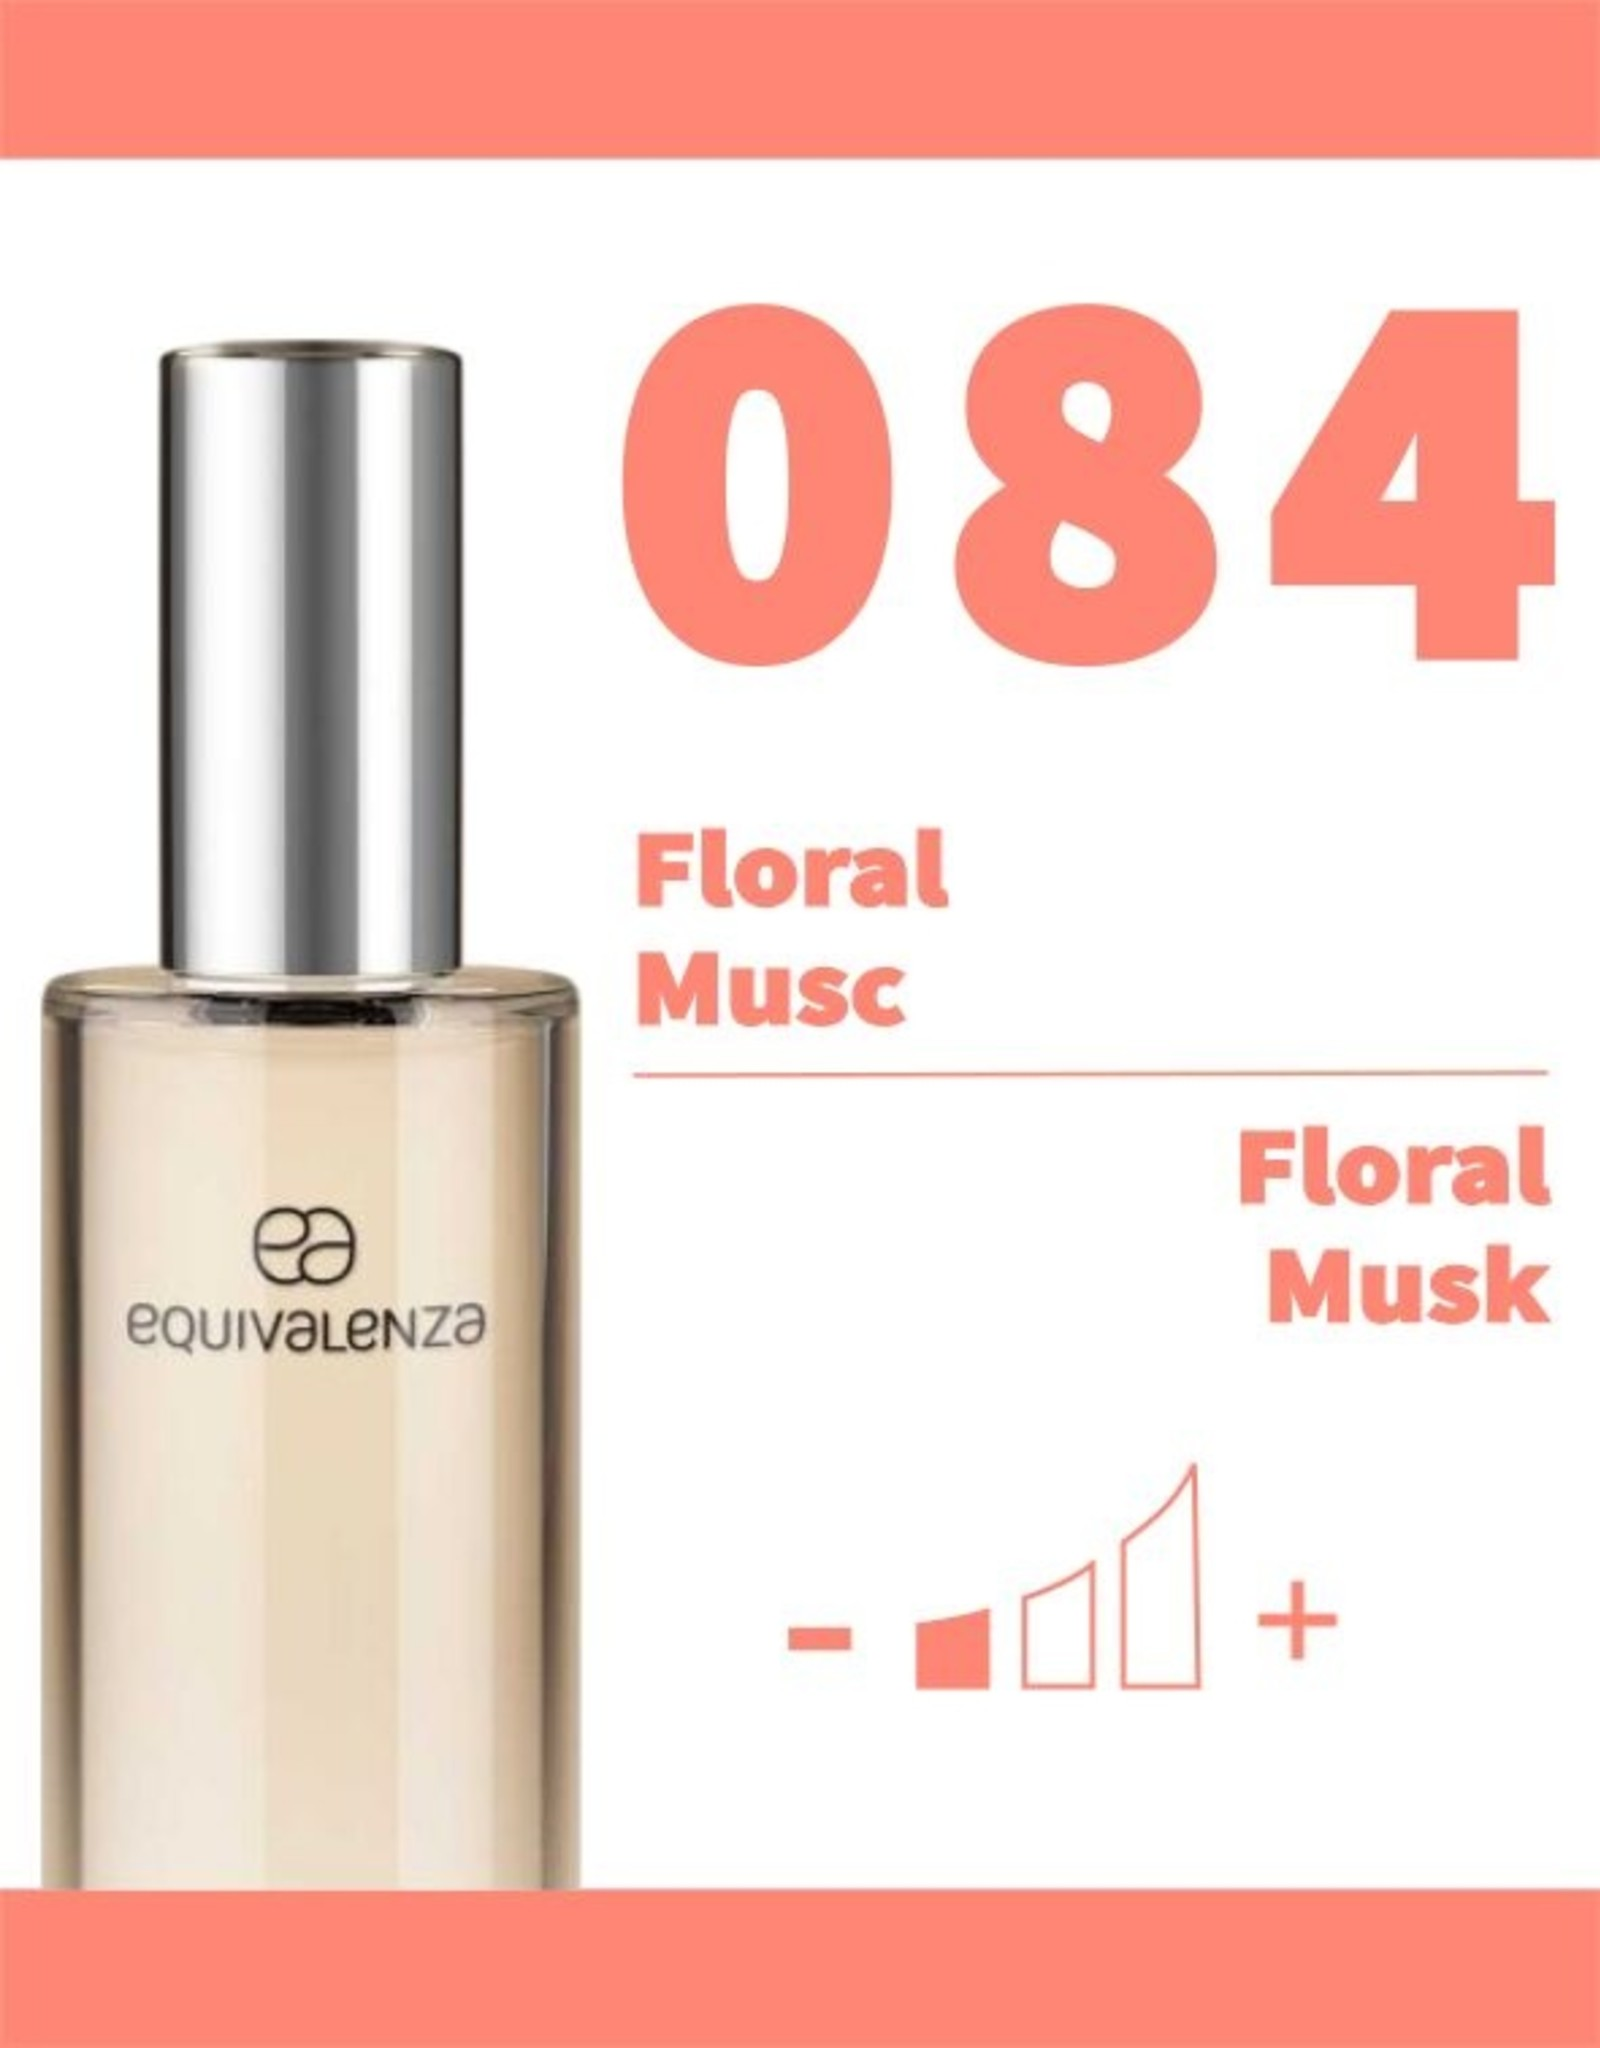 Equivalenza Floral Musk 084